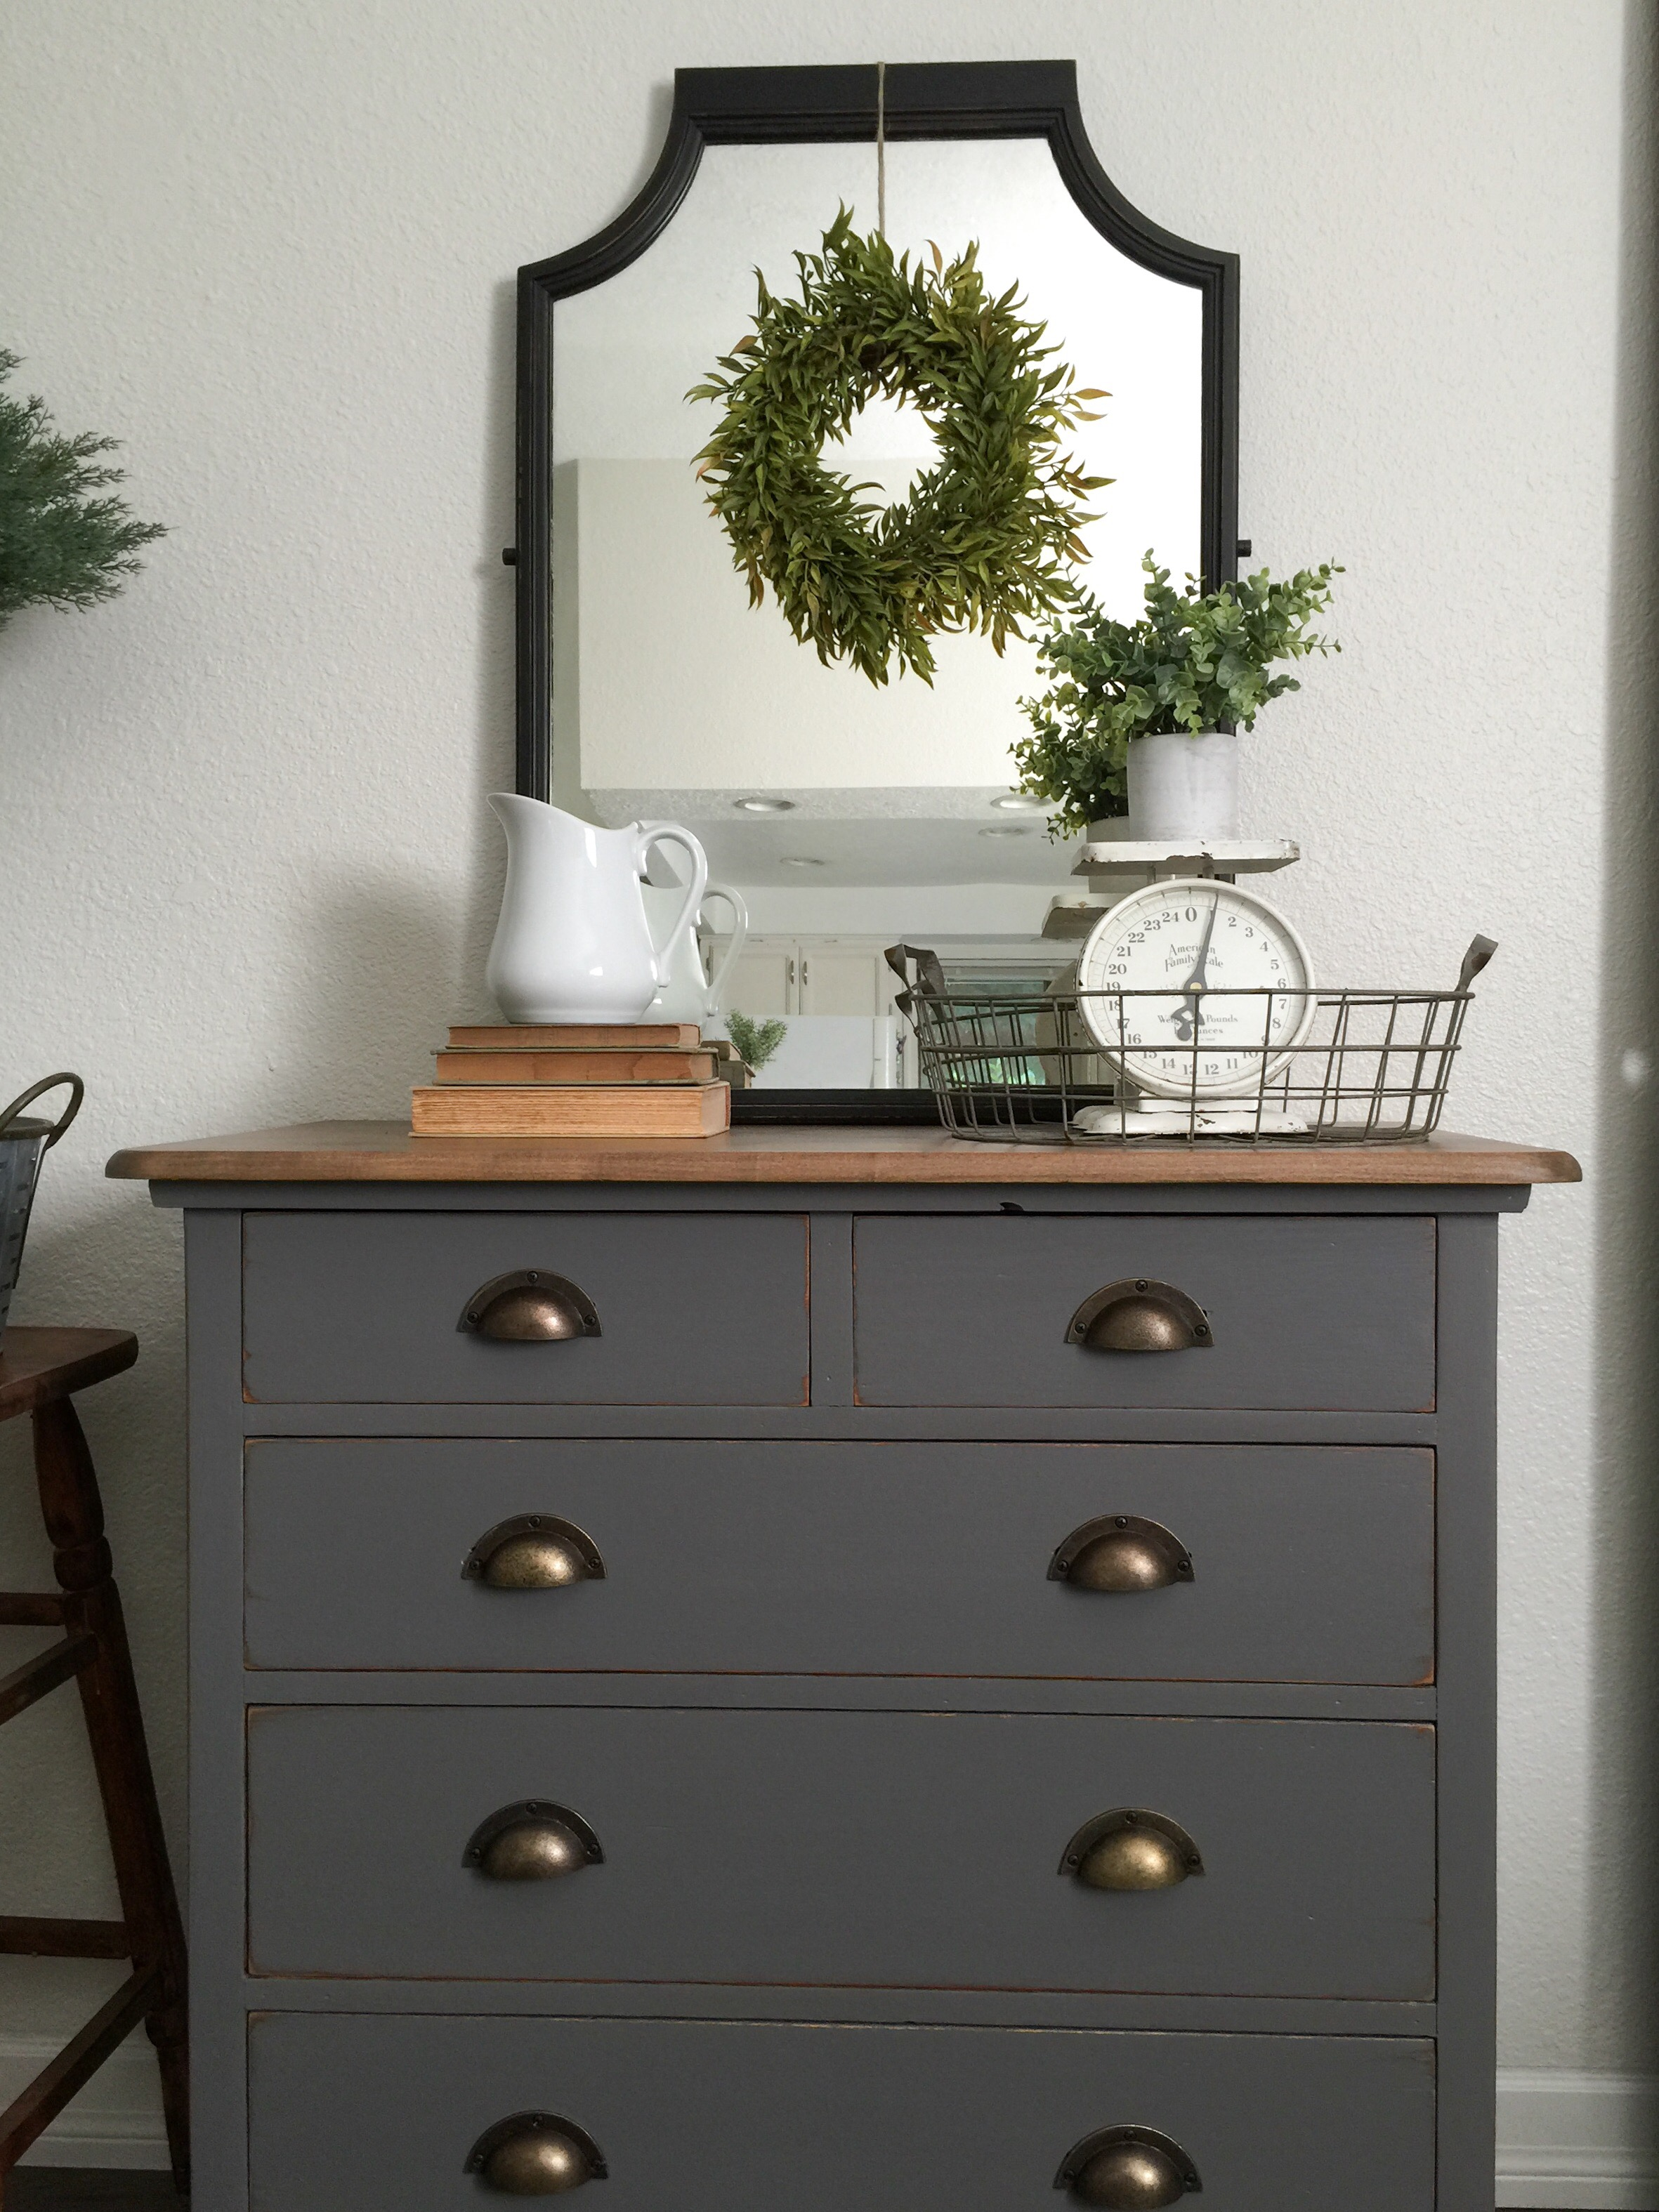 grey painted chairs revolving chair autocad block charcoal gray dresser with a sweet little note farm